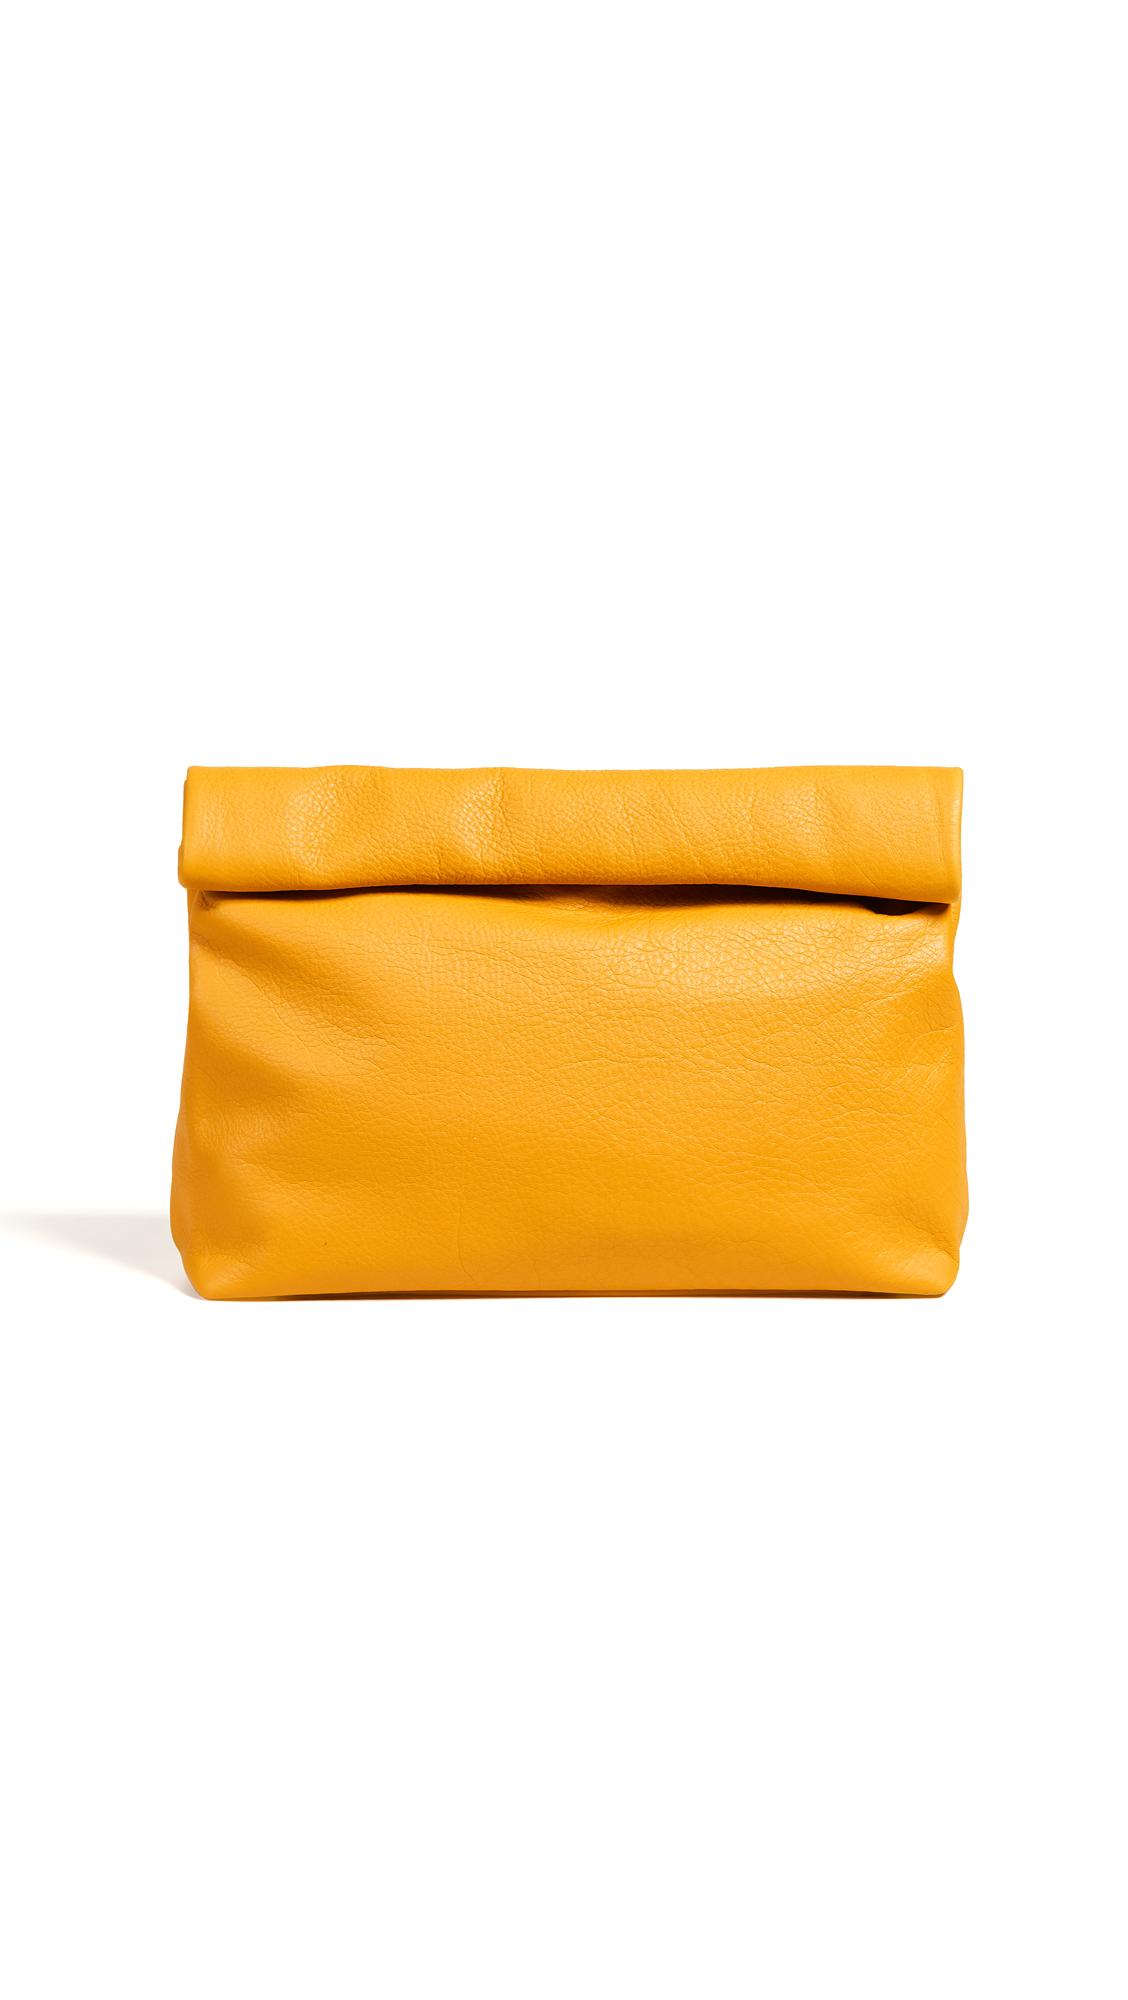 Marie Turnor Accessories The Lunch Clutch In Mustard